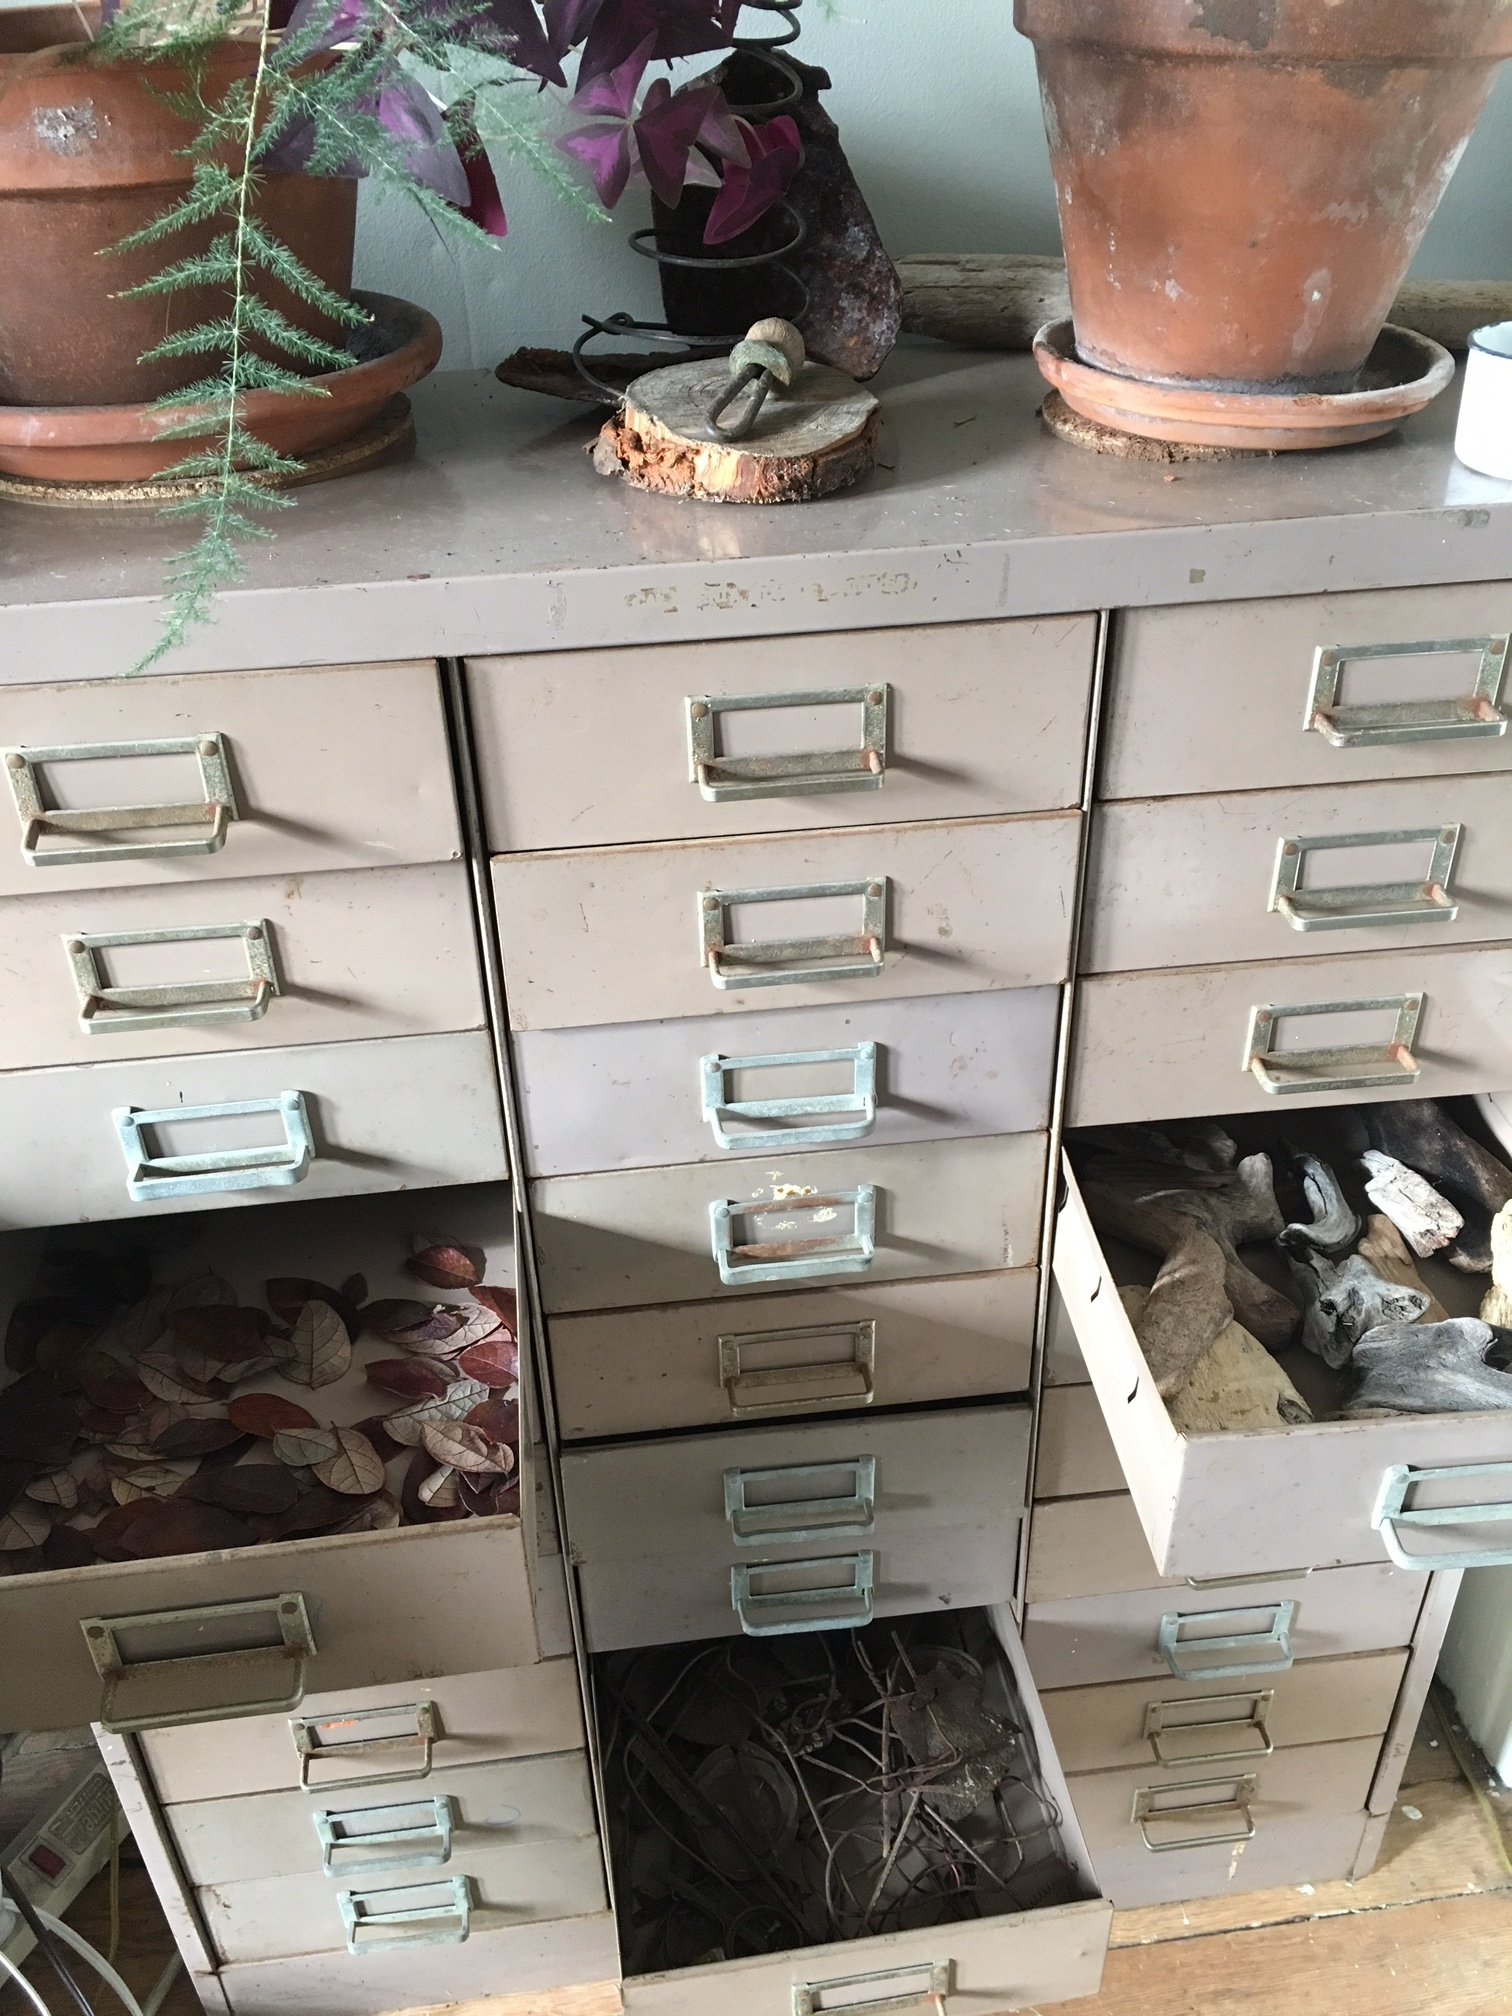 30 drawers now do what piles of bowls and bins and boxes did, and much more tidily!